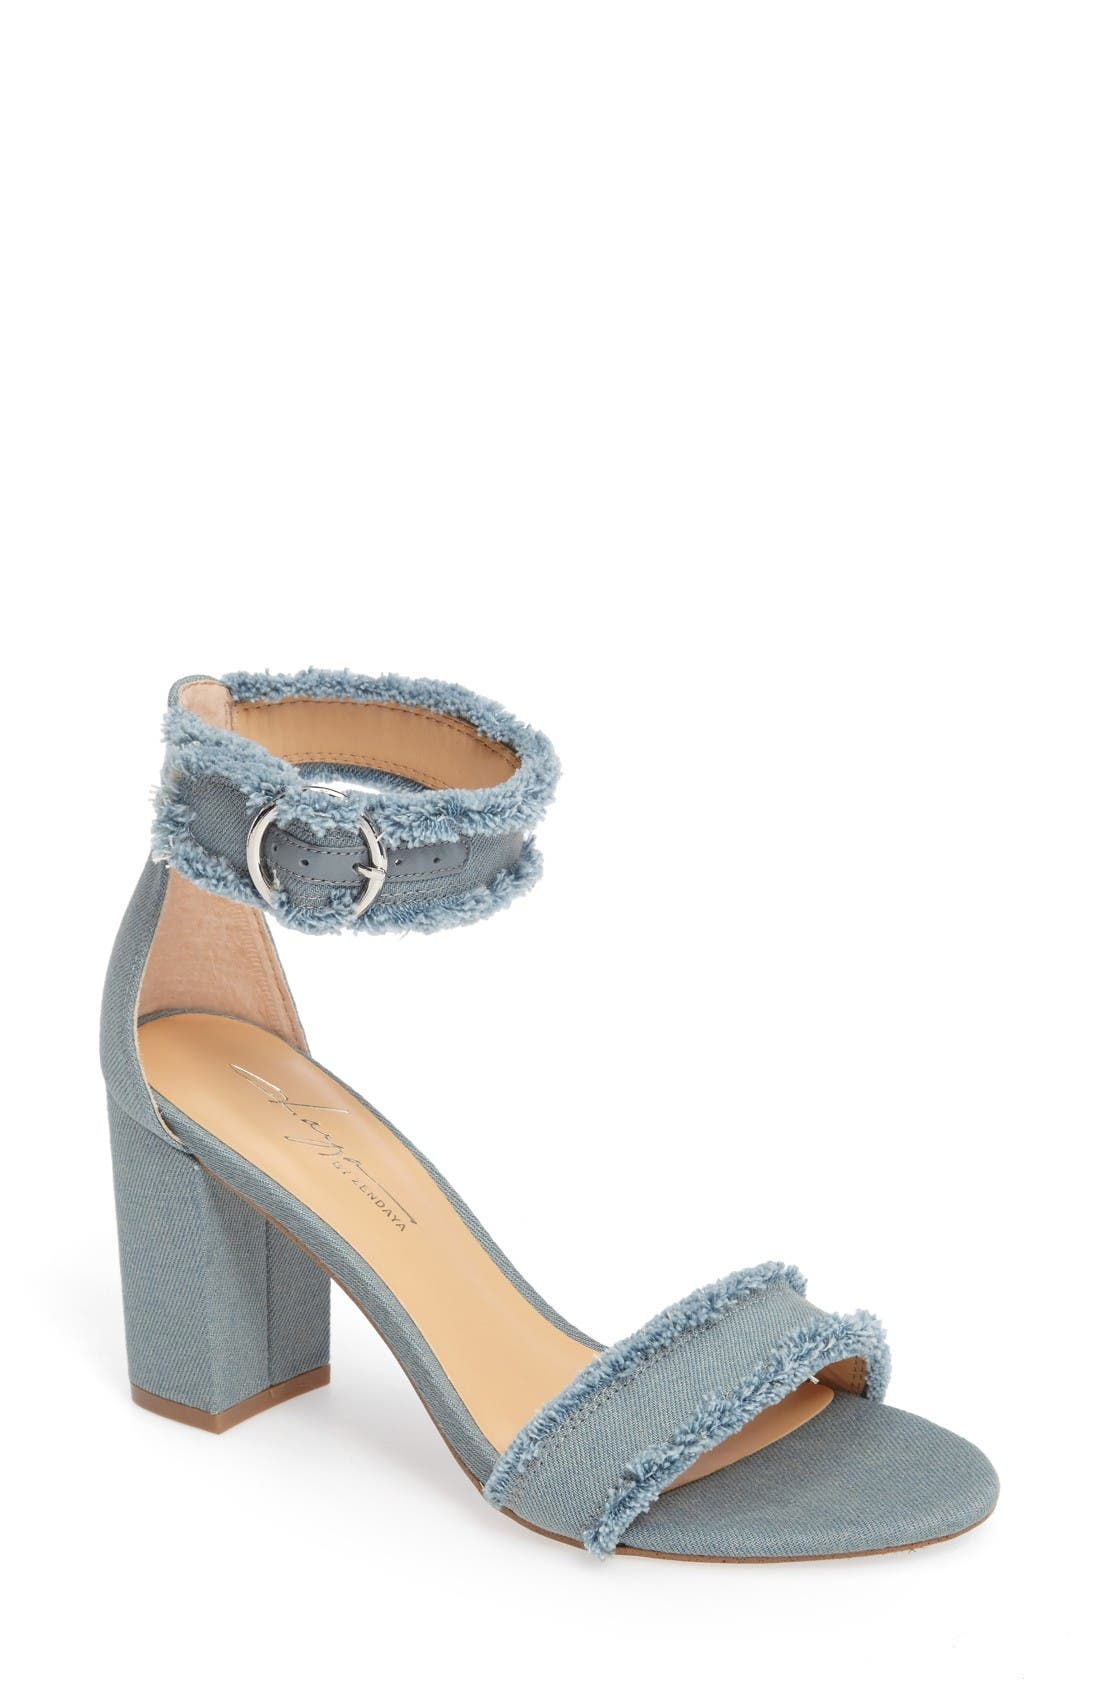 Alternate Image 1 Selected - Daya by Zendaya Shasta Fringe Denim Ankle Strap Sandal (Women)